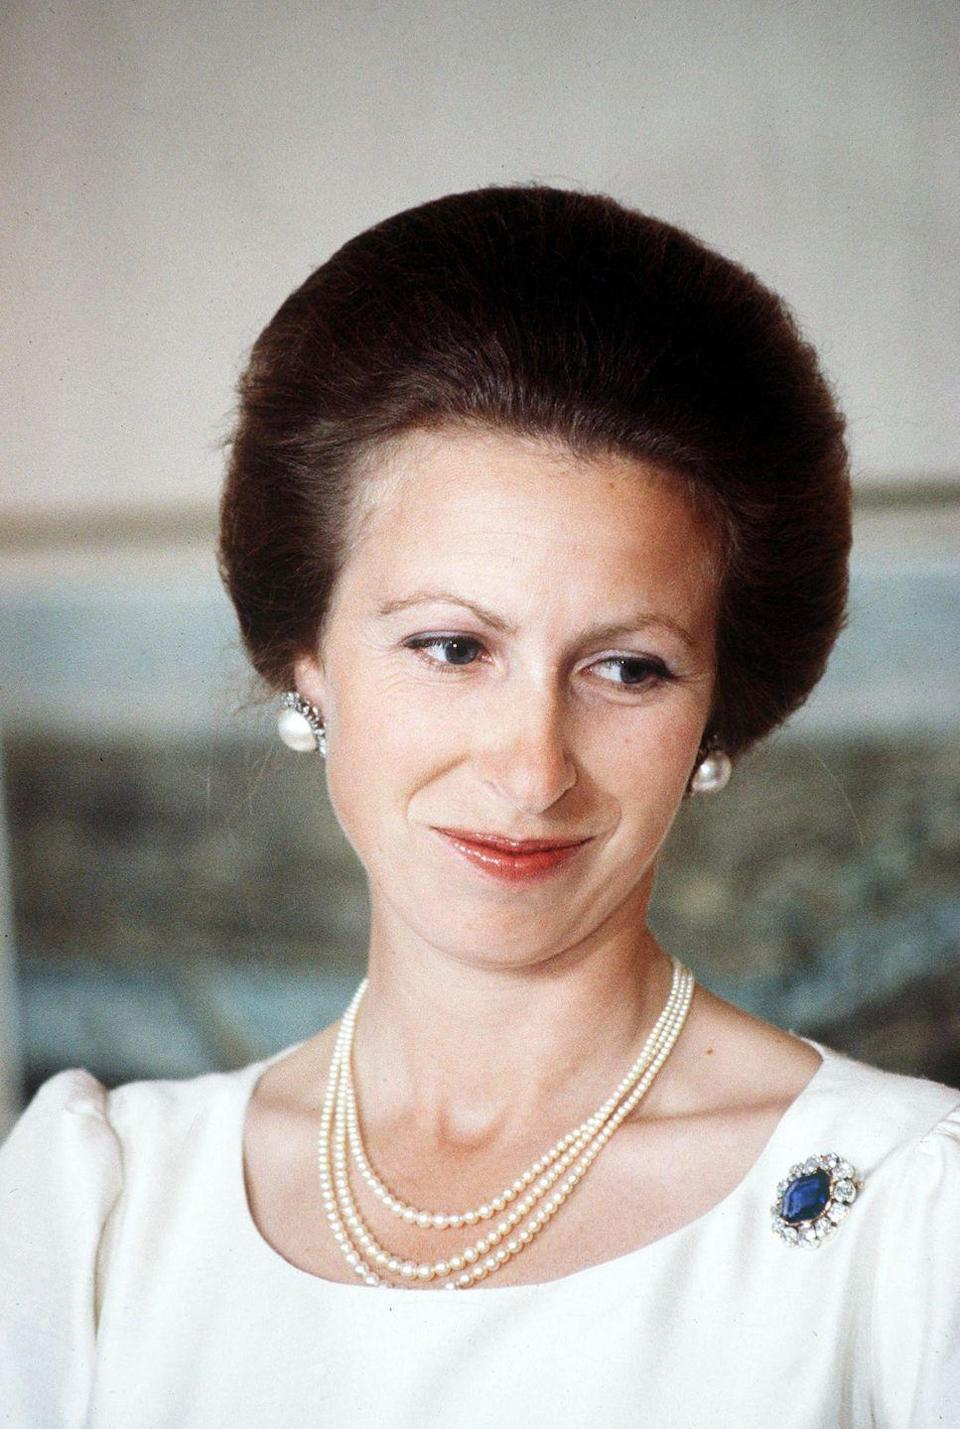 <p>The exact provenance of Princess Anne's sapphire brooch isn't clear. Some believe that when creating that aforementioned famous brooch for Queen Victoria, Prince Albert made replicas for their daughters. Others believe that only one copy was made for the queen herself. Either way, the piece found its way to Queen Elizabeth's only daughter. </p>